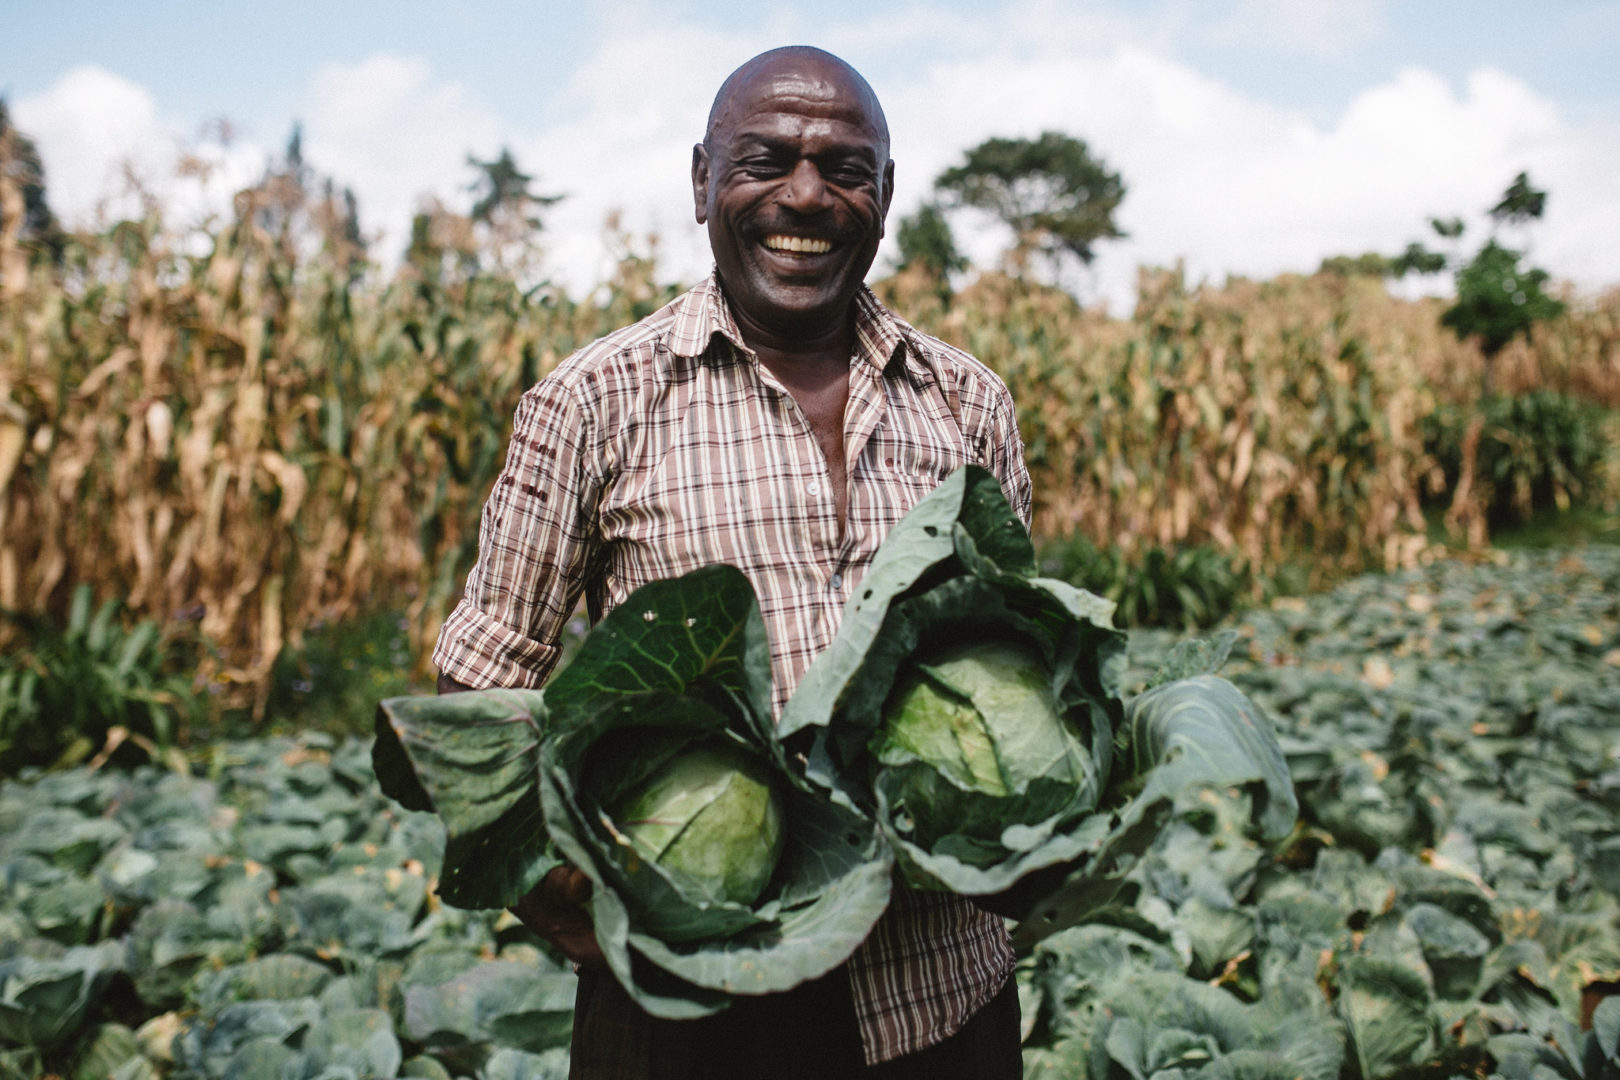 Mungubariko shows some of the growth from his most recent harvest.